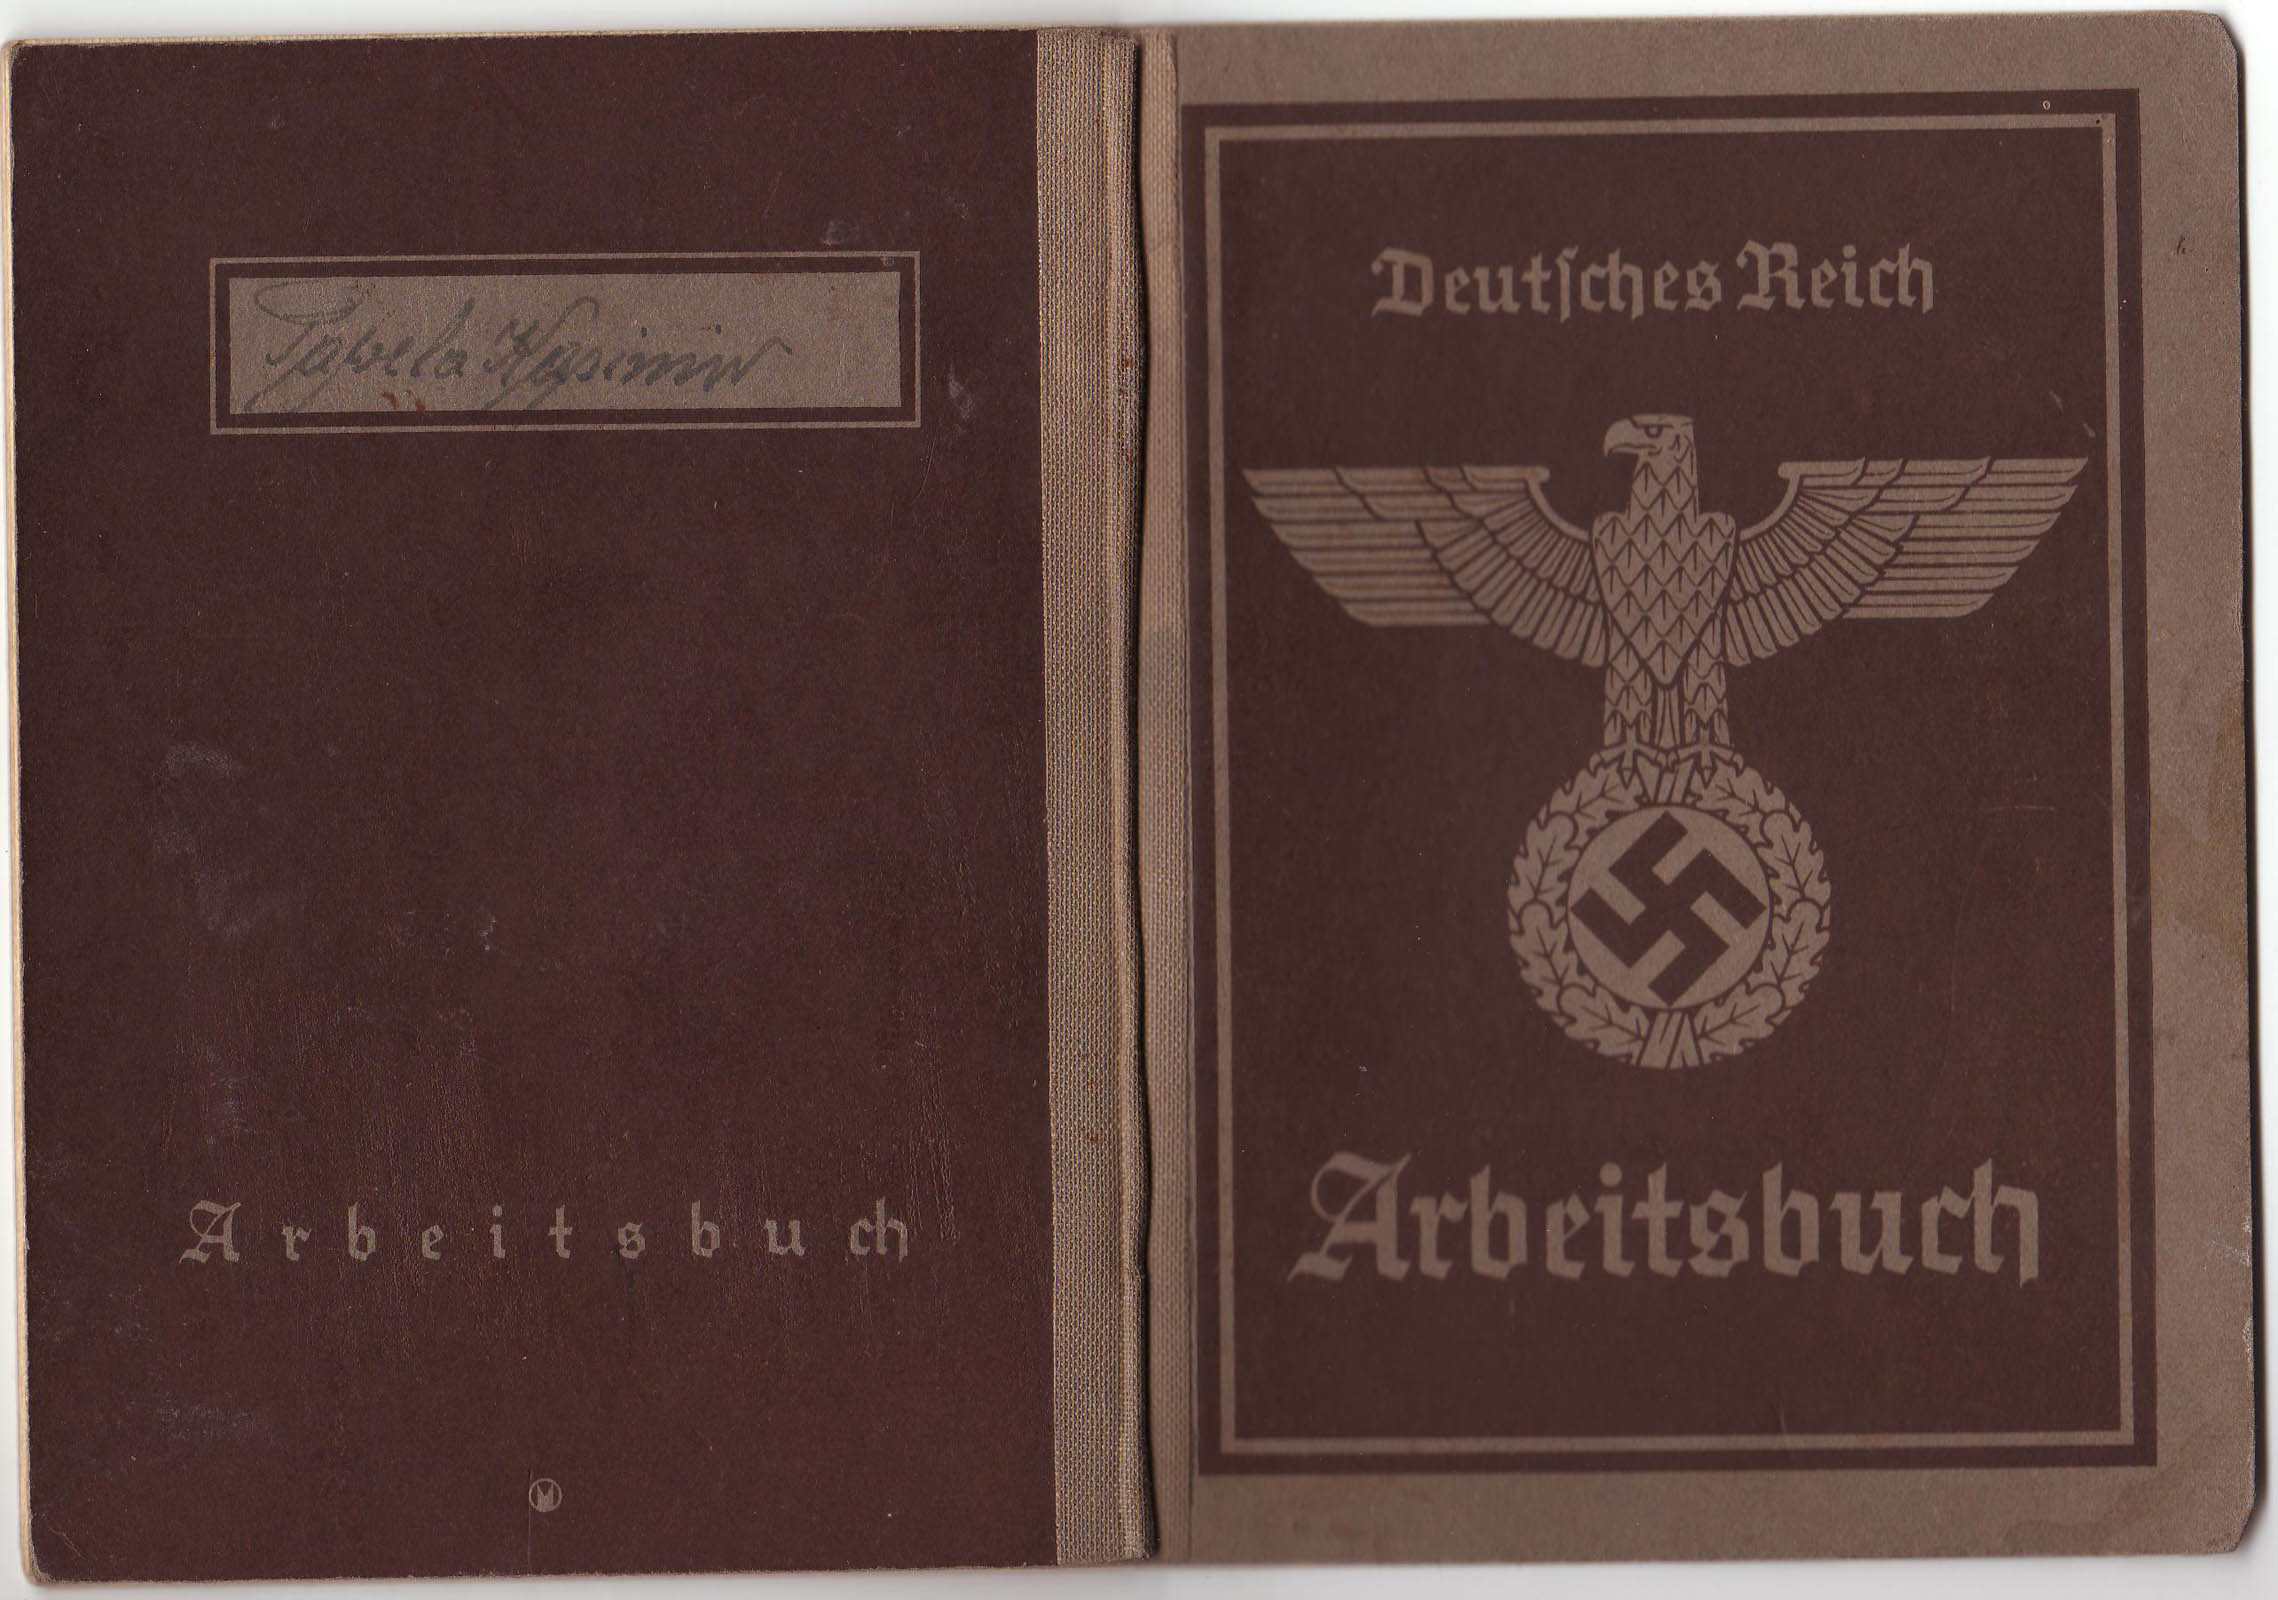 Arbeitsbuch of civilian worker from Janinagrube 1